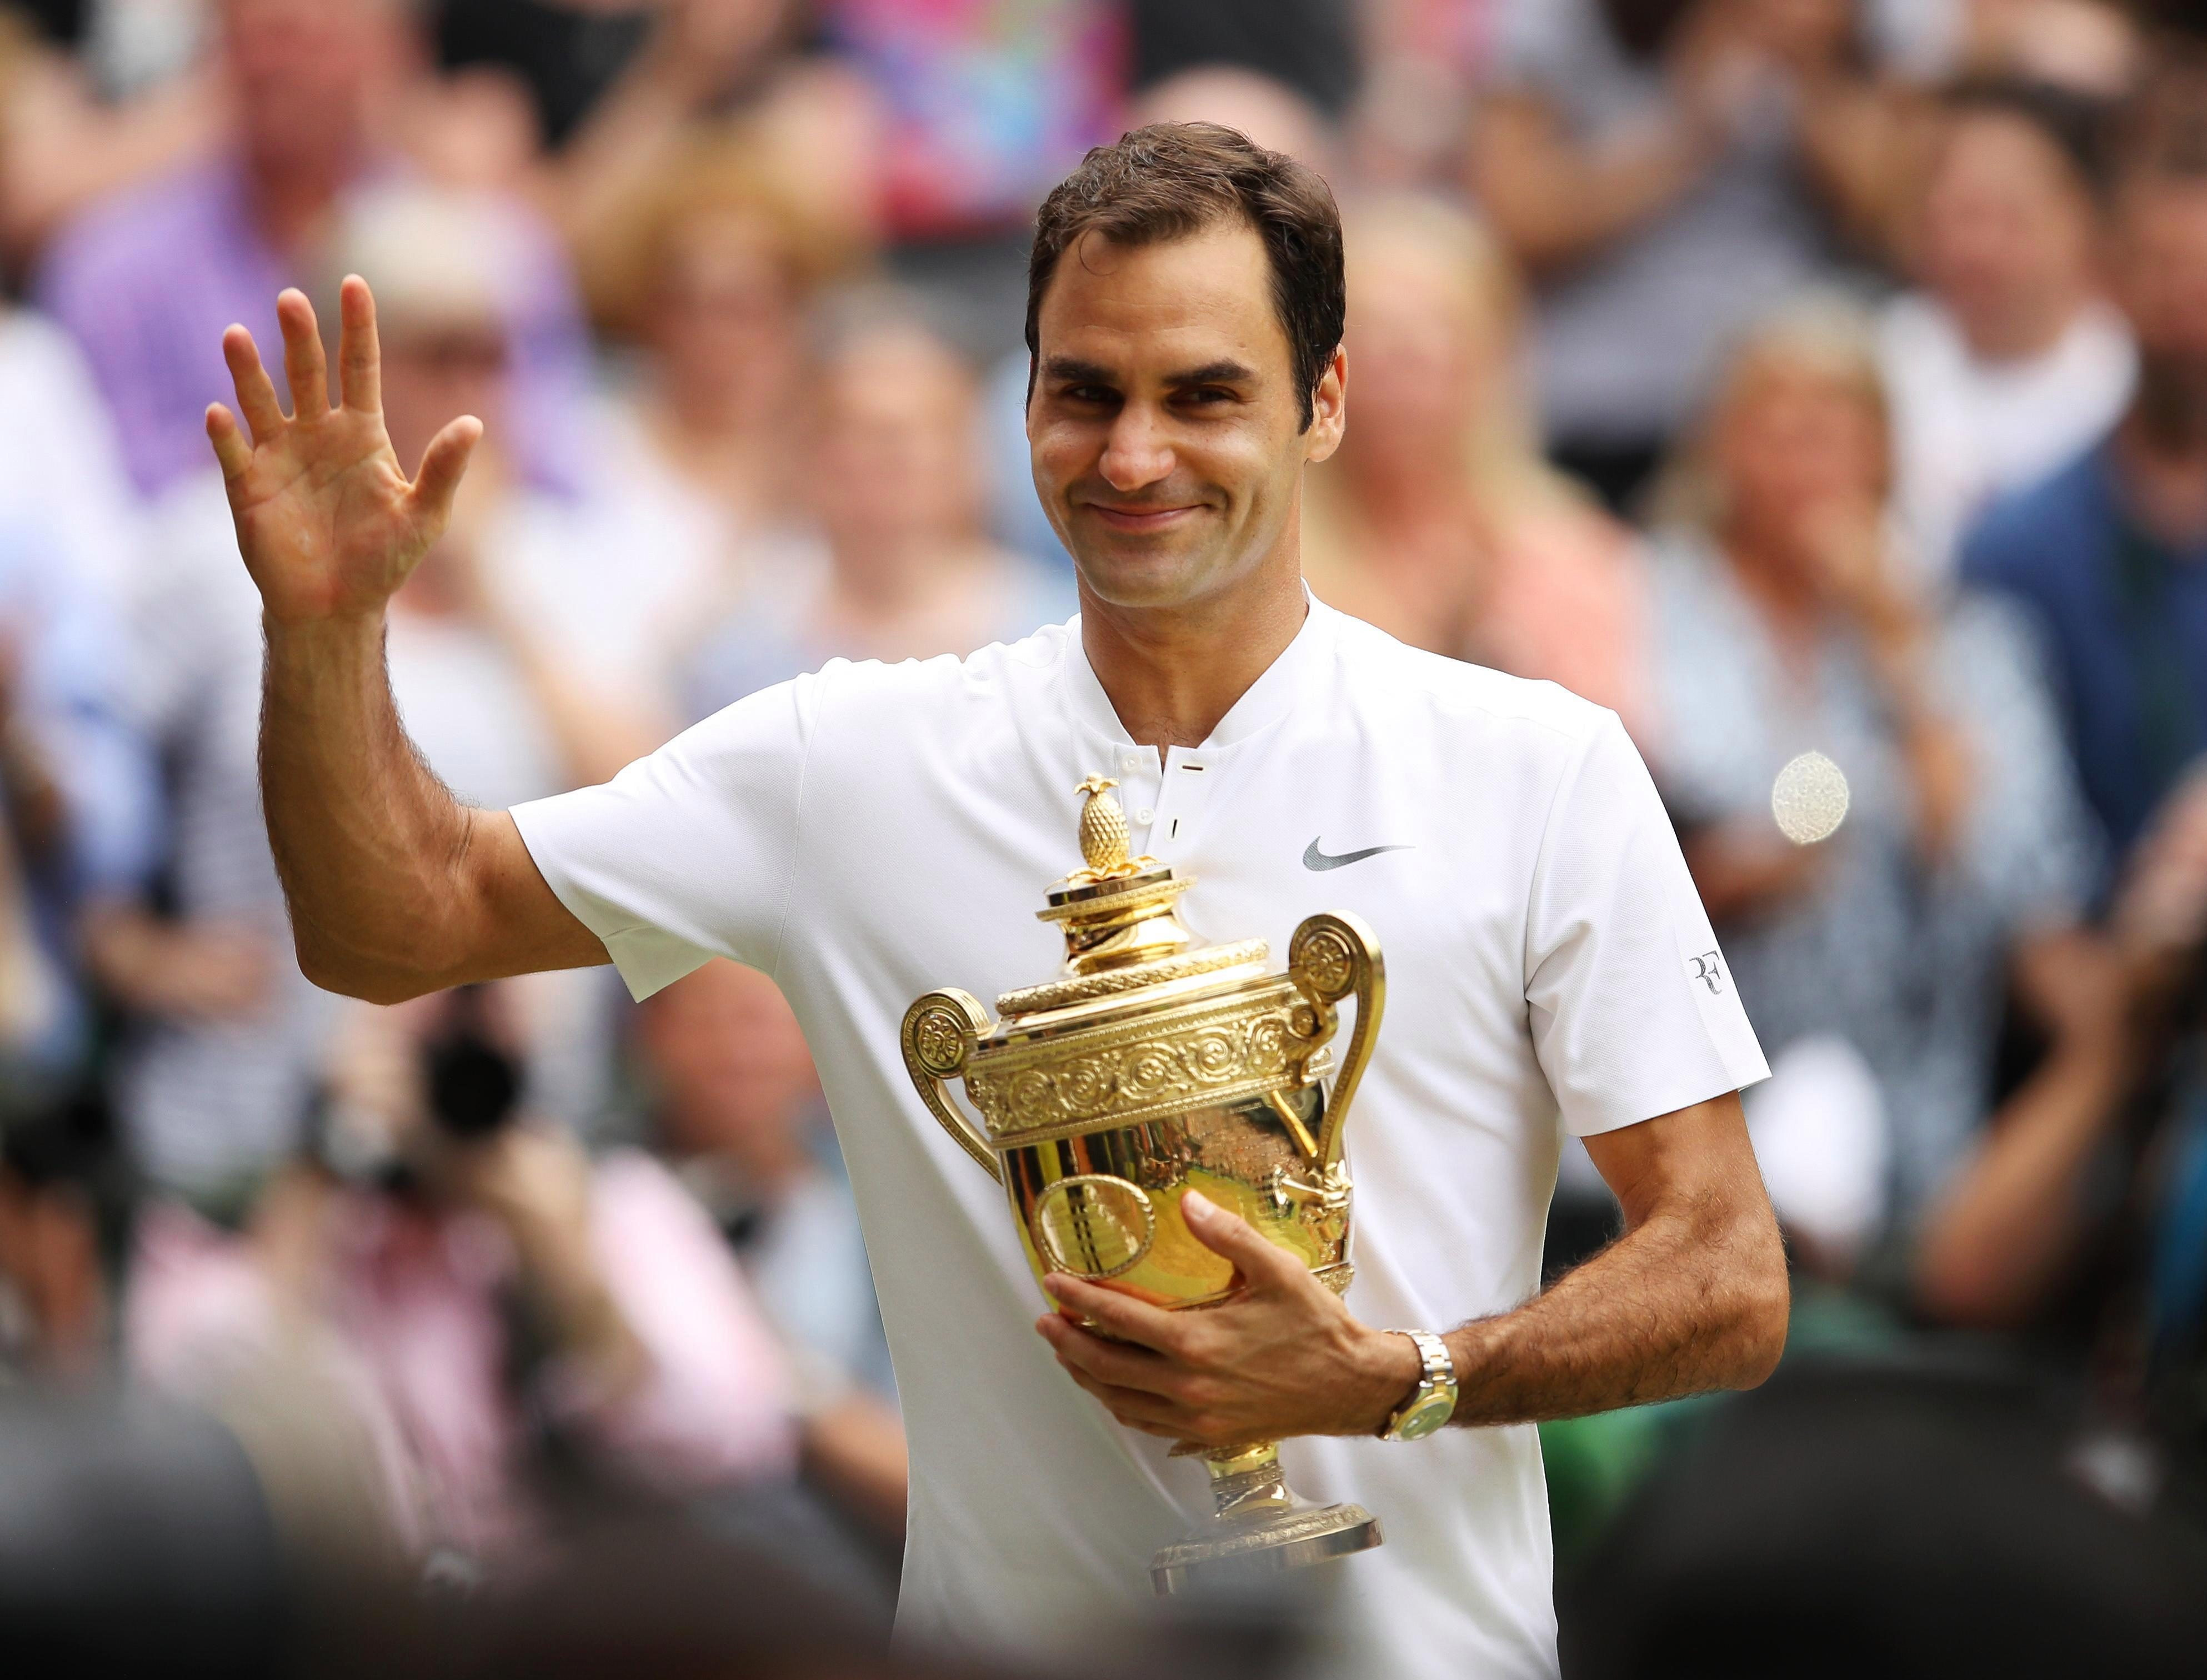 Roger Federer won his record eight Wimbledon title last year